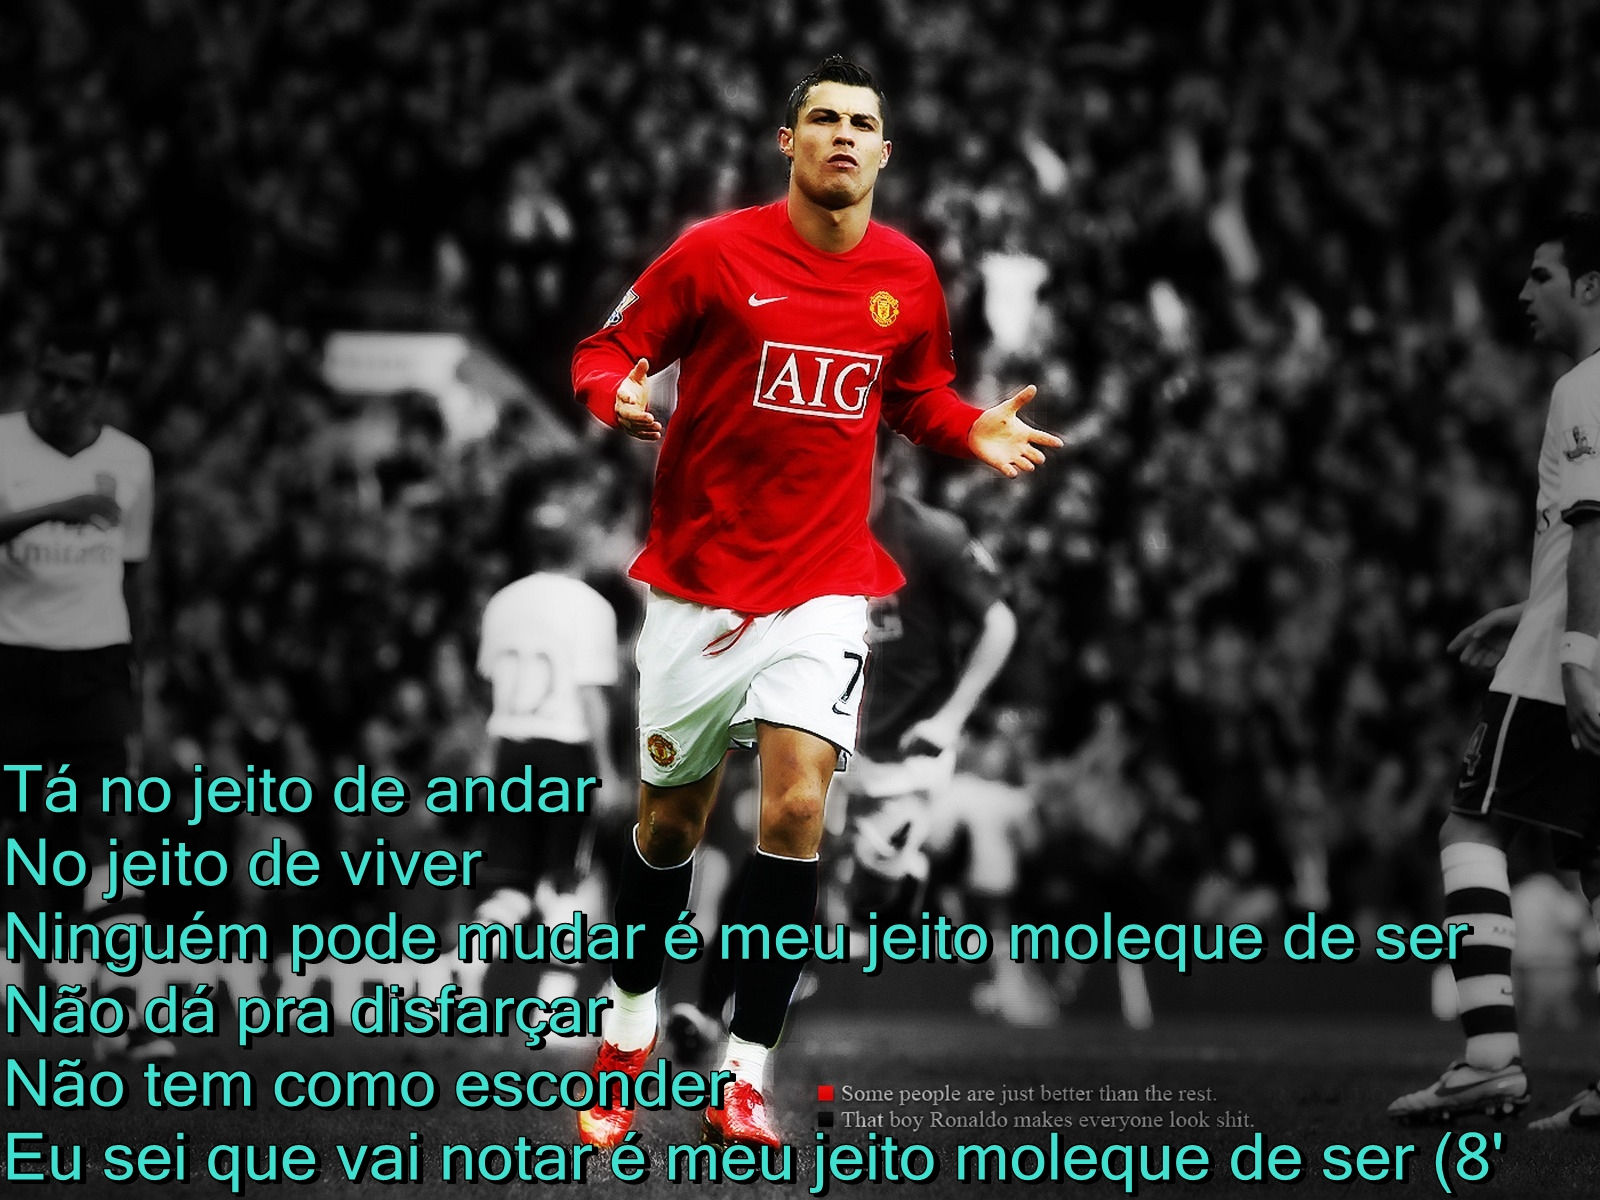 http://2.bp.blogspot.com/-Go7JQlkeArA/T86Ld7opJgI/AAAAAAAAAPI/SQ74a40QBp0/s1600/super-man-football-player-cristiano-ronaldo-wallpapers-cristiano-ronaldo-wallpaper-hd-1.jpg